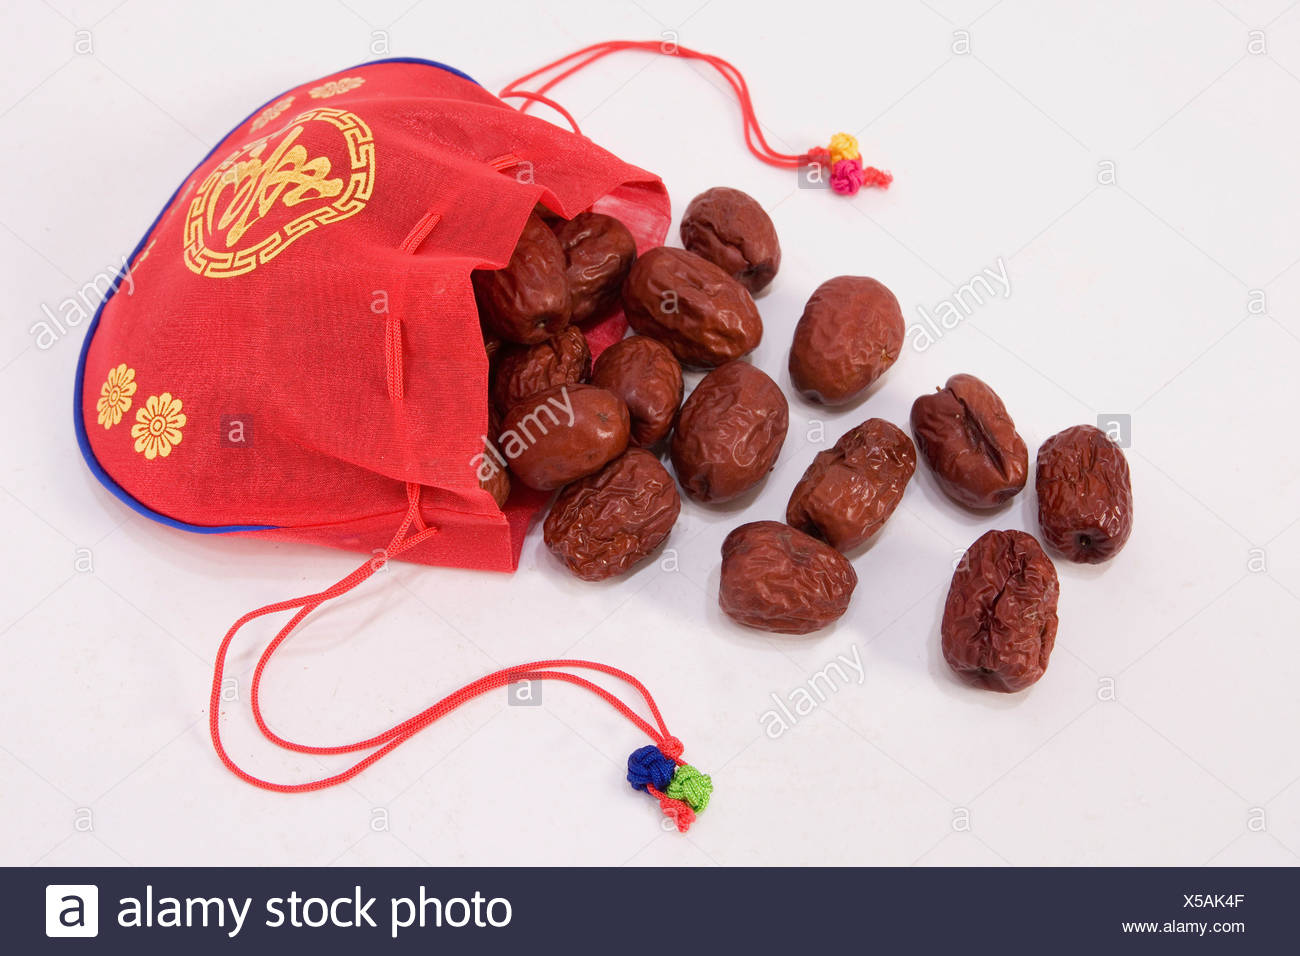 jujube spilled out from the lucky bag - Stock Image